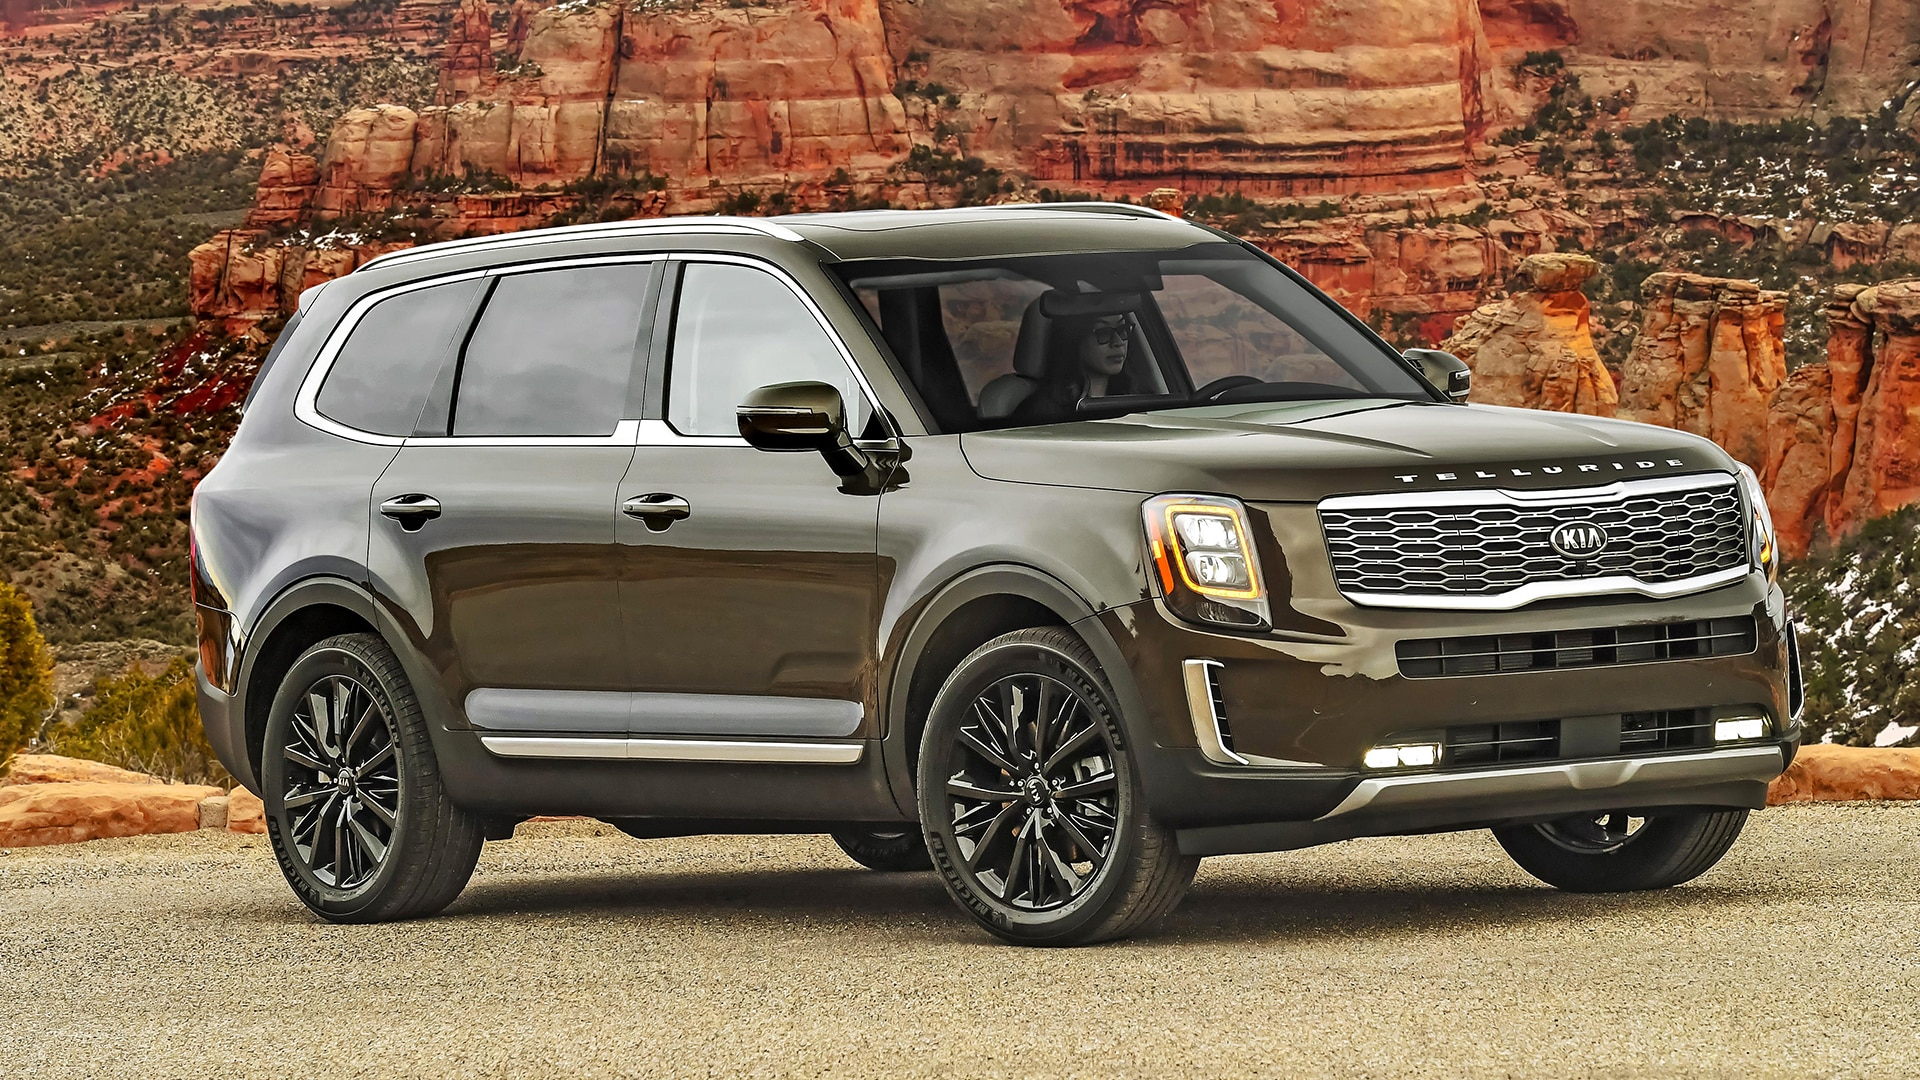 2020 kia telluride first drive review  classy and comfortable